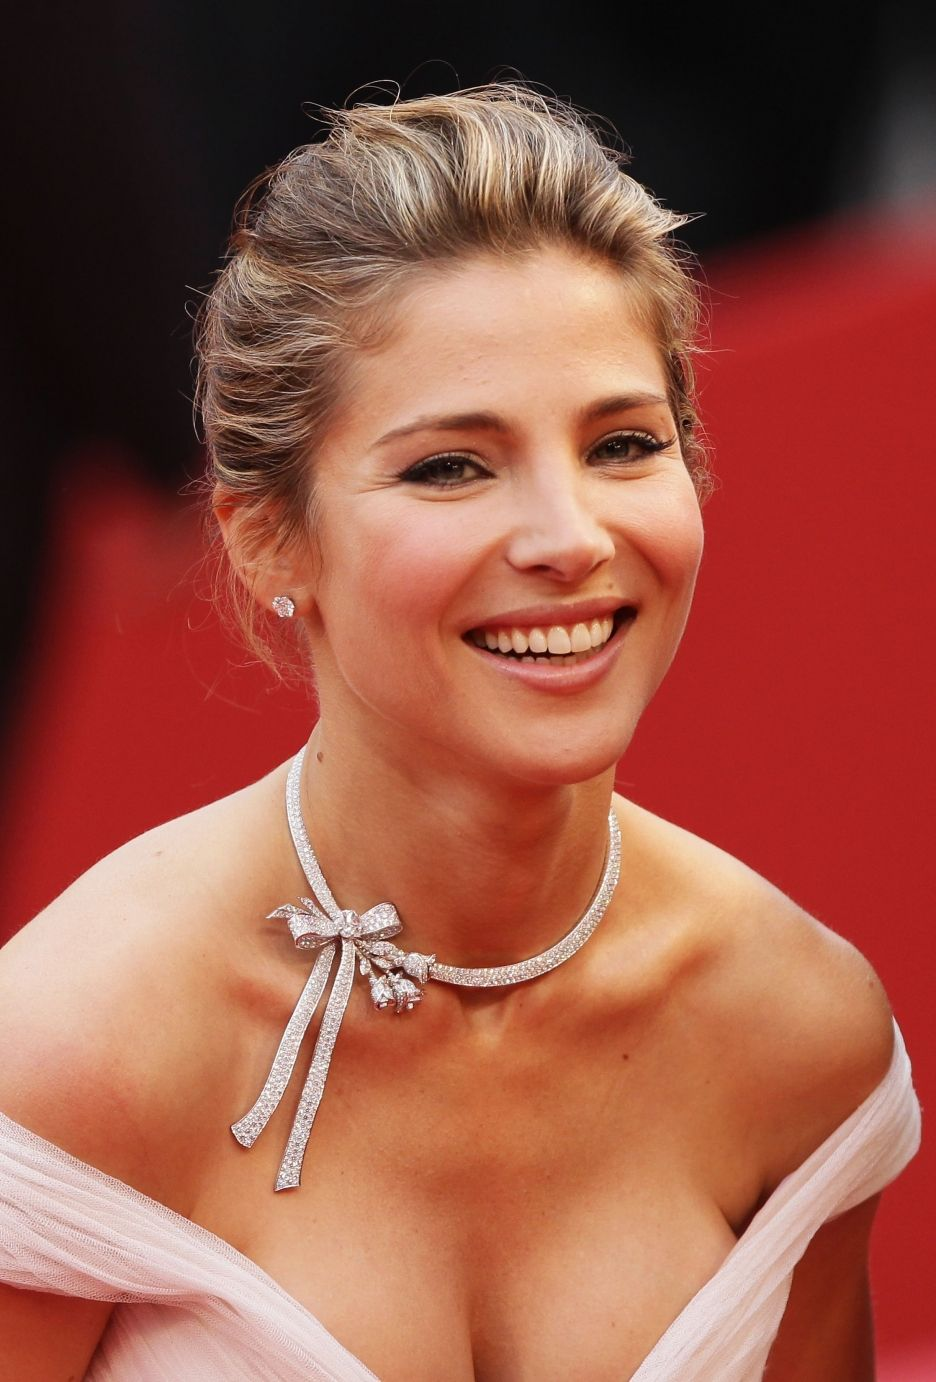 elsa pataky fatherelsa pataky 2017, elsa pataky hola, elsa pataky blog, elsa pataky confidential instagram, elsa pataky fast five, elsa pataky and chris hemsworth wedding, elsa pataky family, elsa pataky yoga, elsa pataky exercise, elsa pataky age, elsa pataky twitter official, elsa pataky tattoos, elsa pataky entrevista, elsa pataky engagement ring, elsa pataky 2010, elsa pataky father, elsa pataky blog glamour, elsa pataky padre, elsa pataky wikipedia español, elsa pataky fast and furious 7